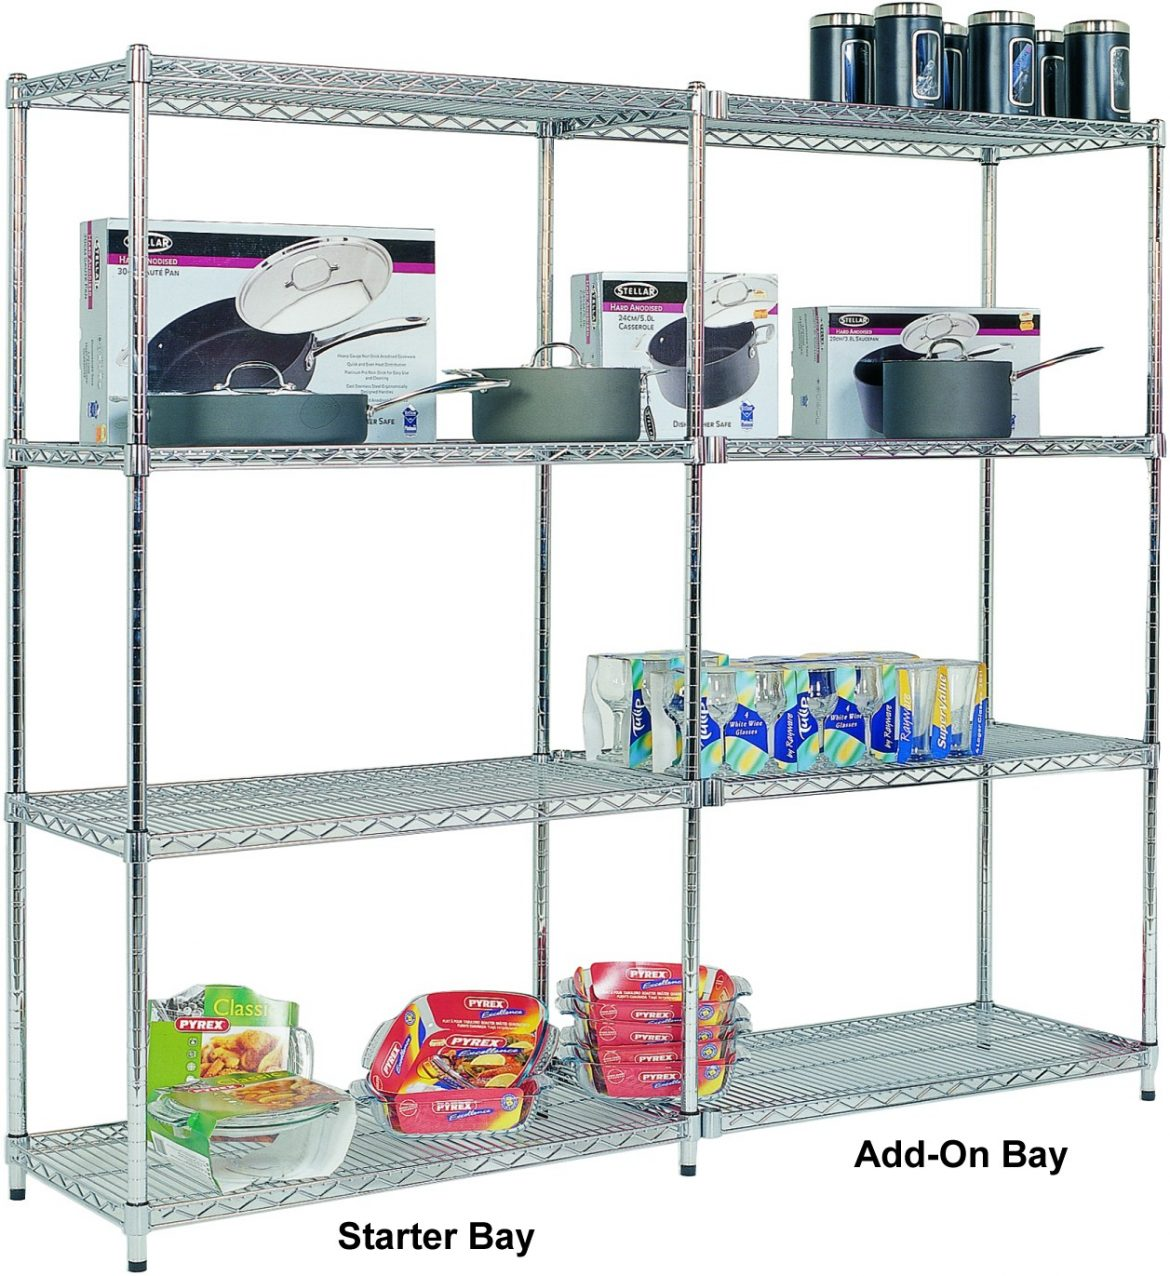 Add On Bay - 4 Chrome Shelves 1880h x 915w x 455d